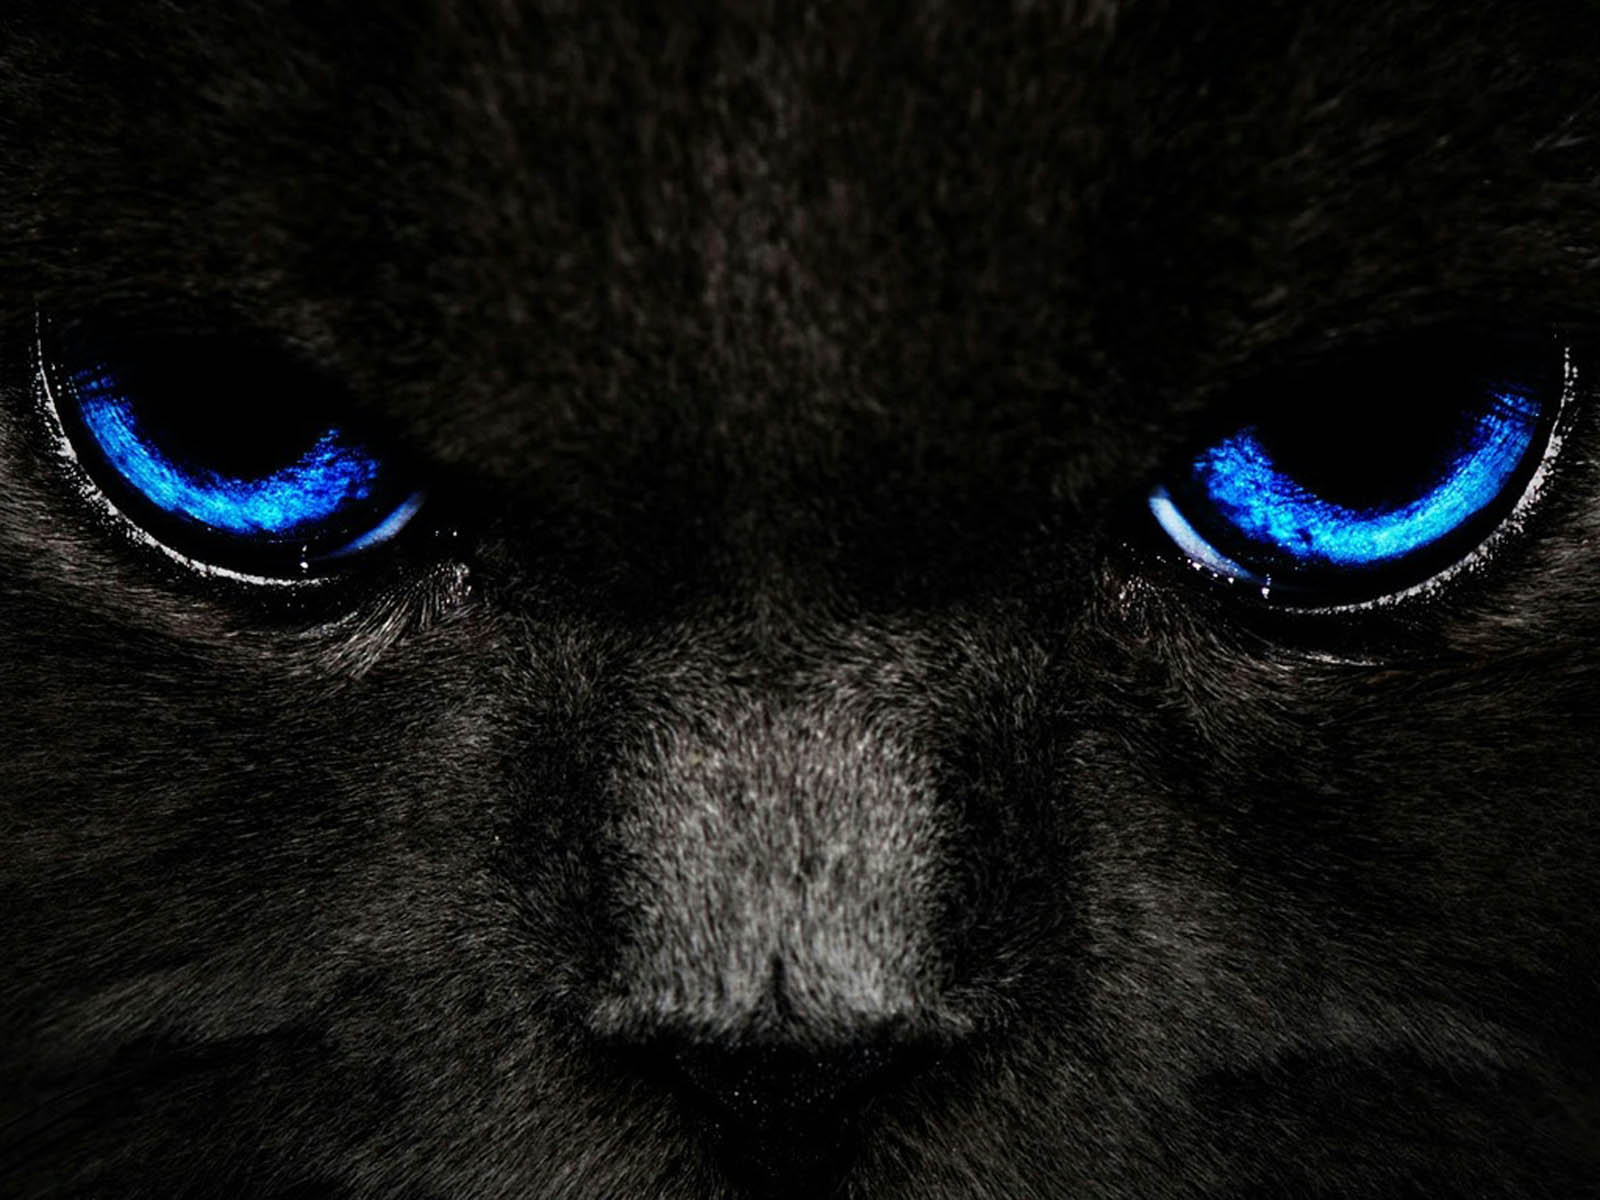 Black Cat Eyes Wallpaper: Wallpapers: Black Cat Blue Eyes